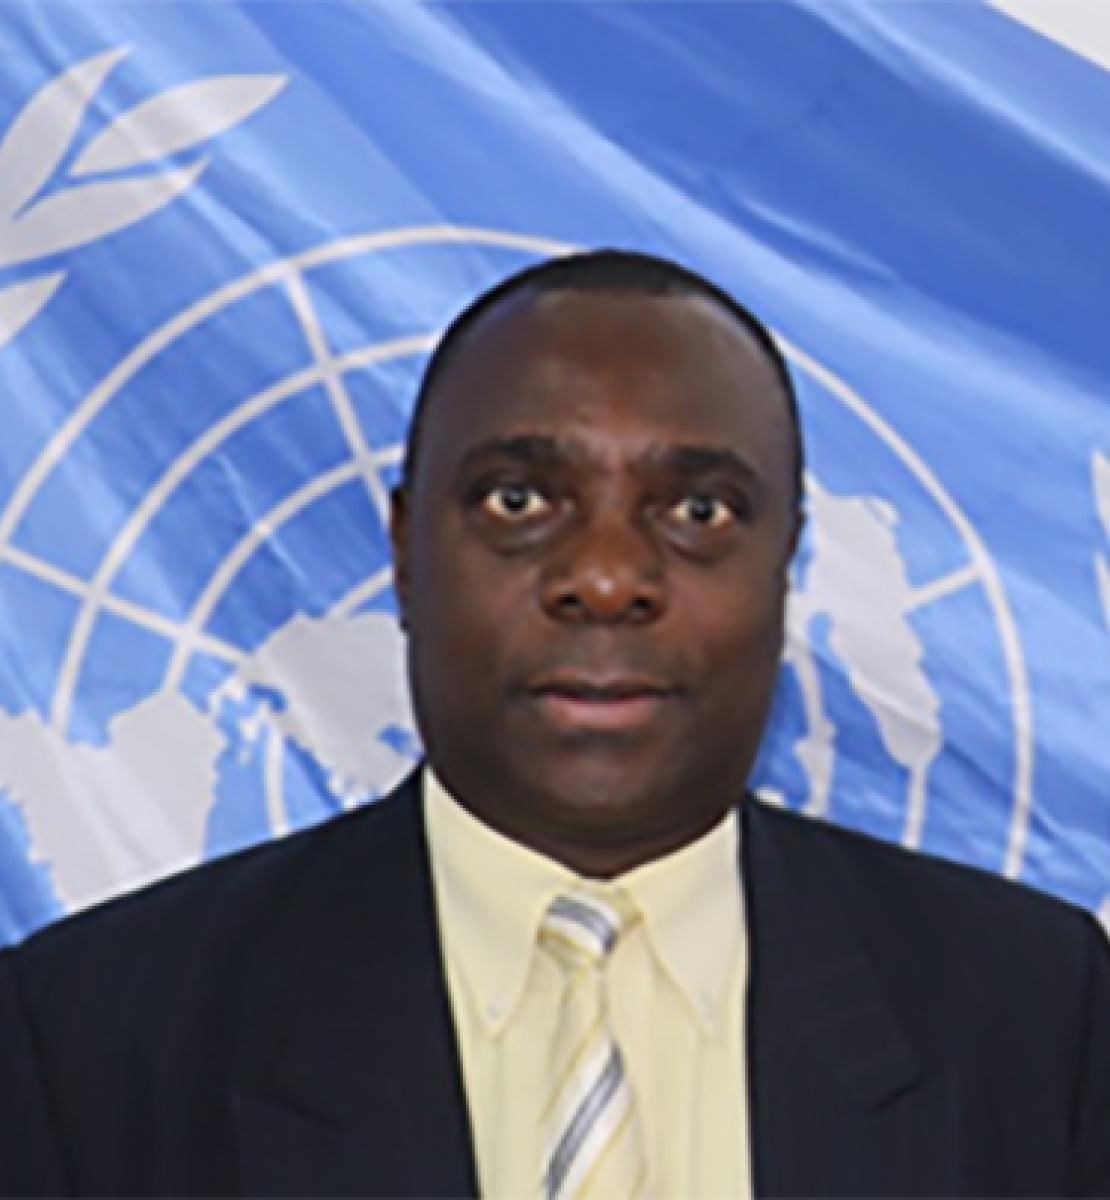 Official photo of the new appointed Resident Coordinator for Comoros, Francois Batalingaya.